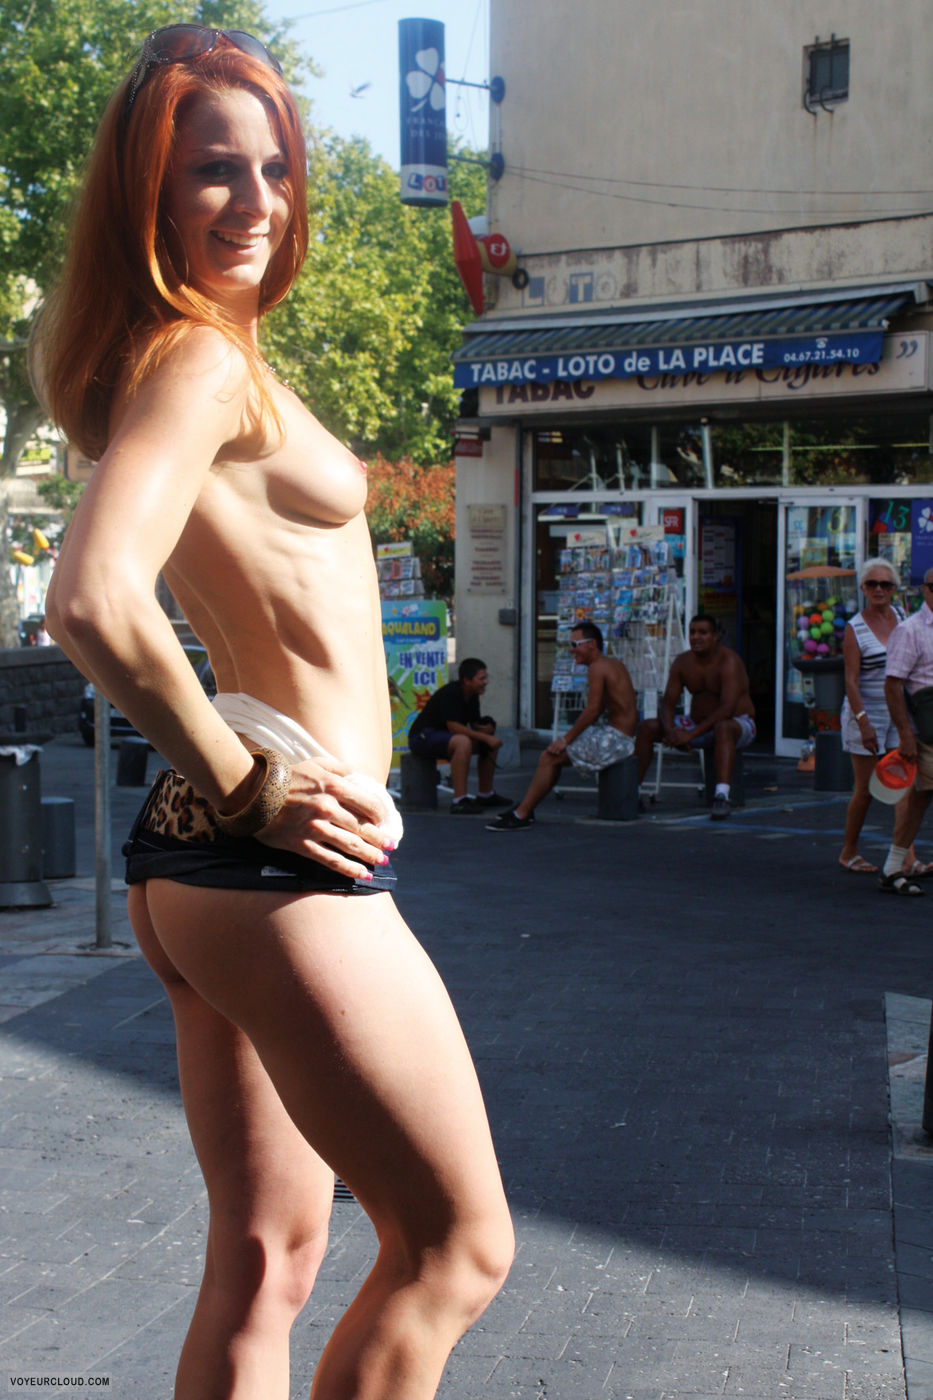 vienna-hungary-&-france-nude-public-07